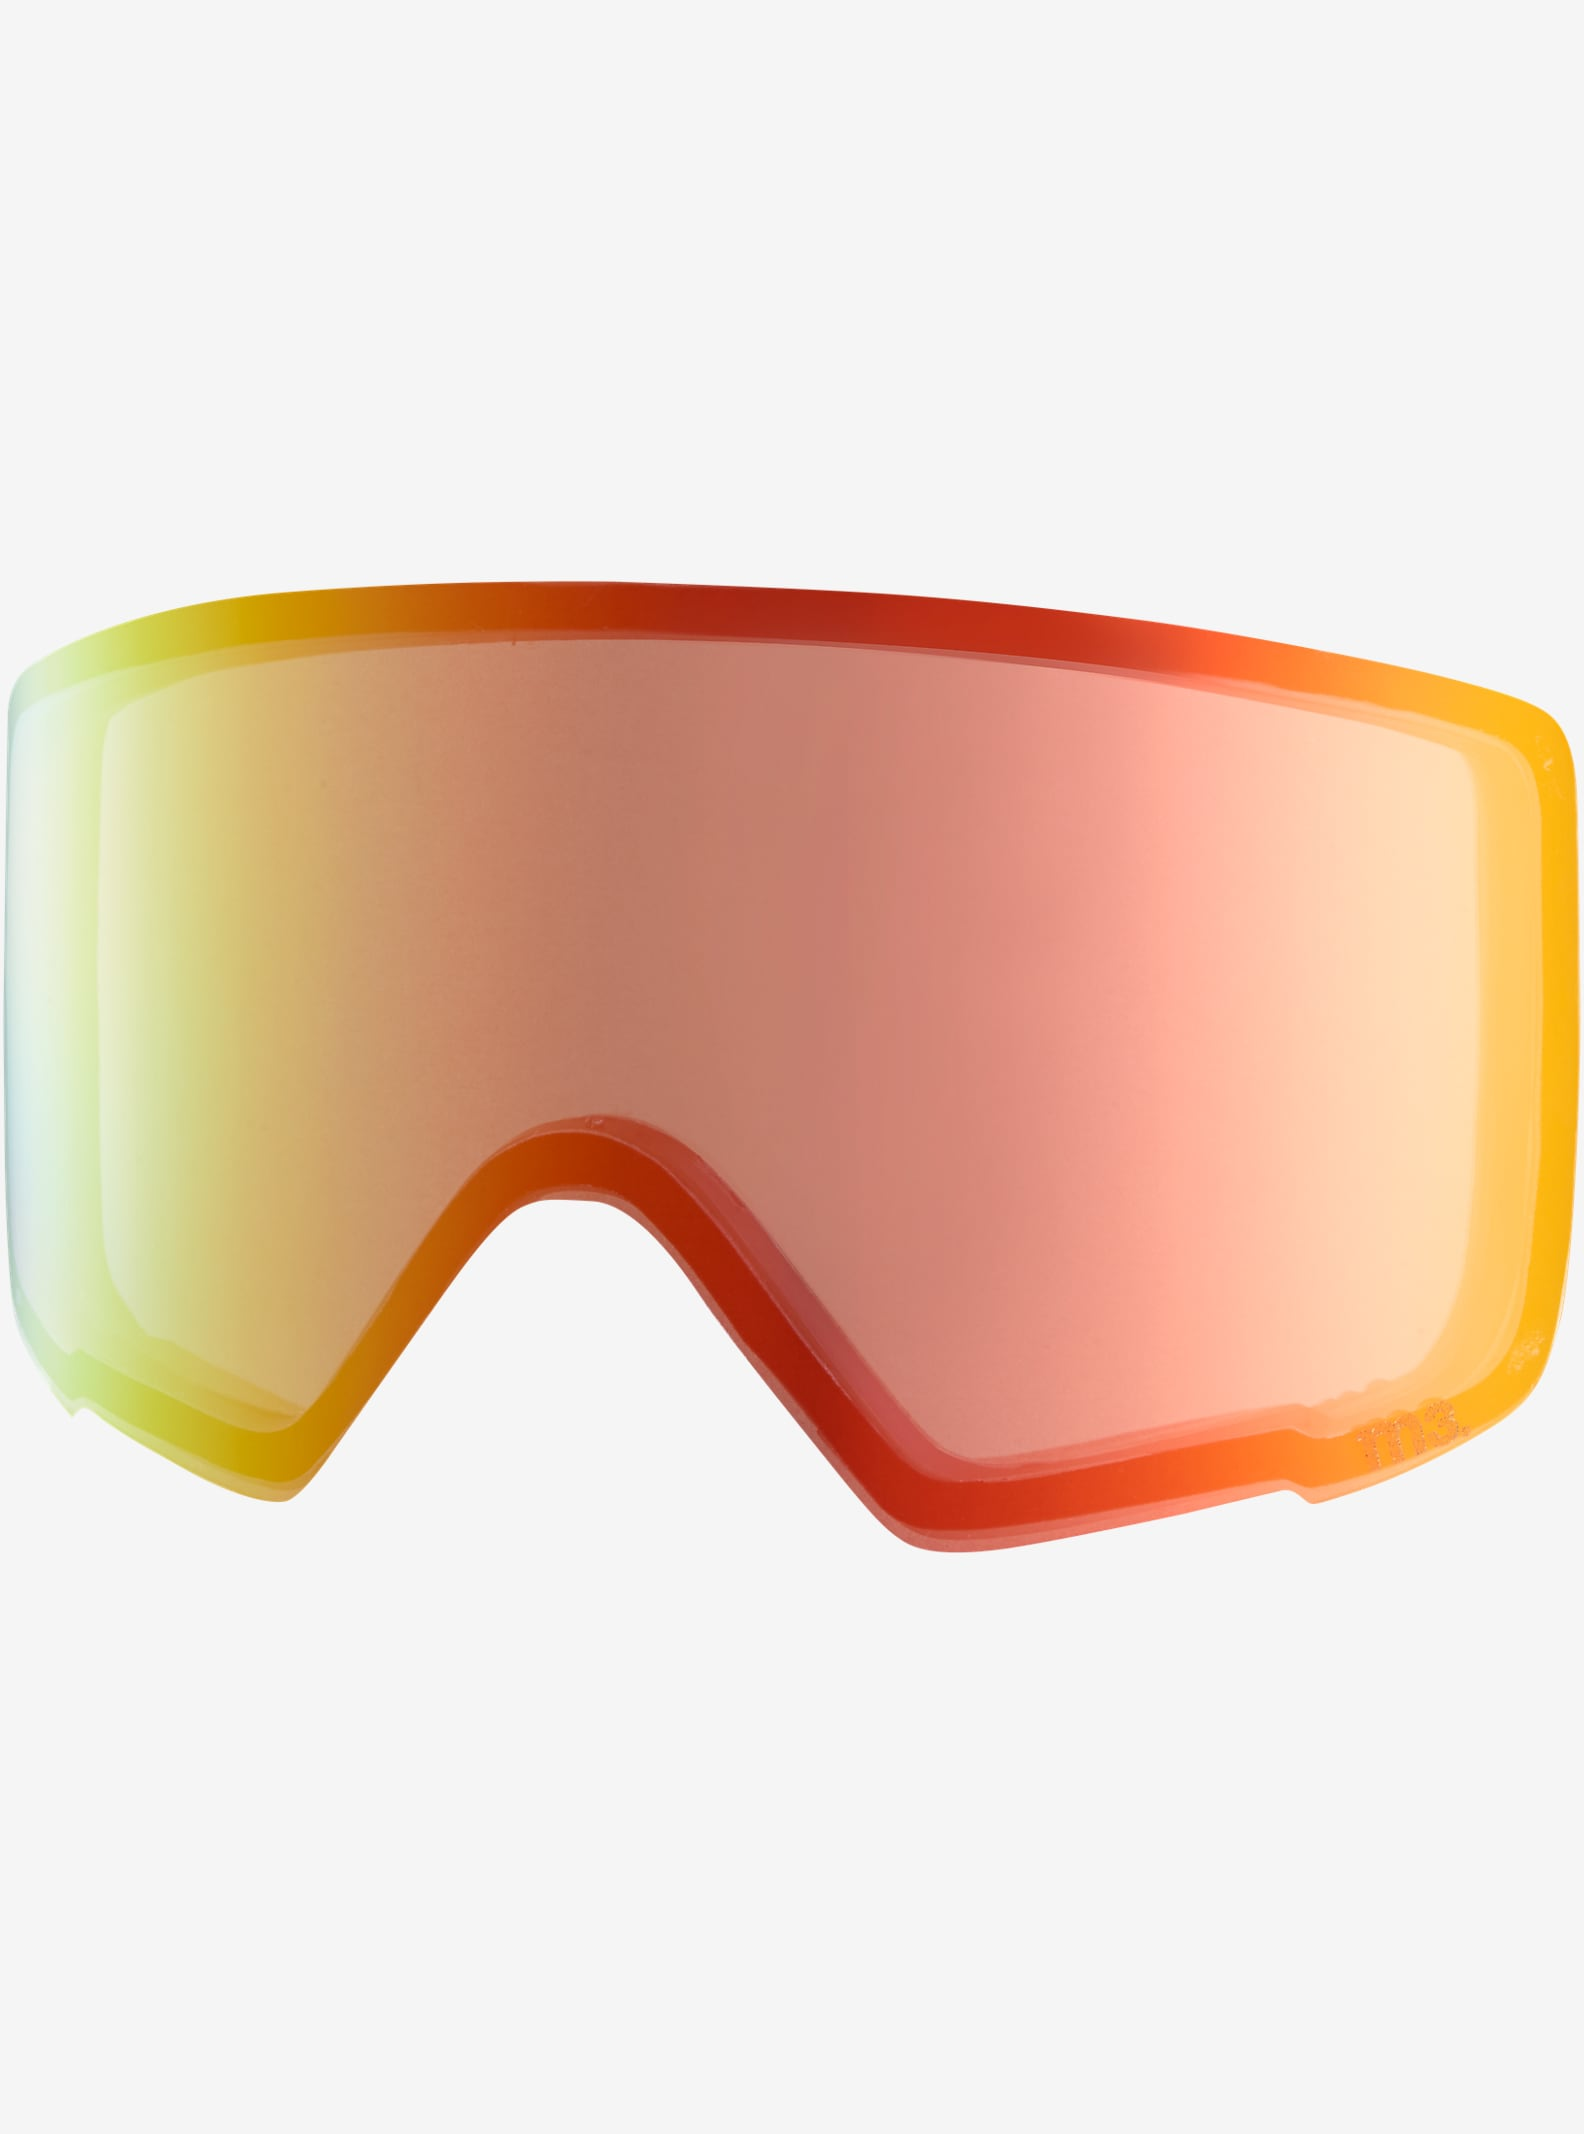 anon. M3 Goggle Lens shown in Red Ice (80% VLT)